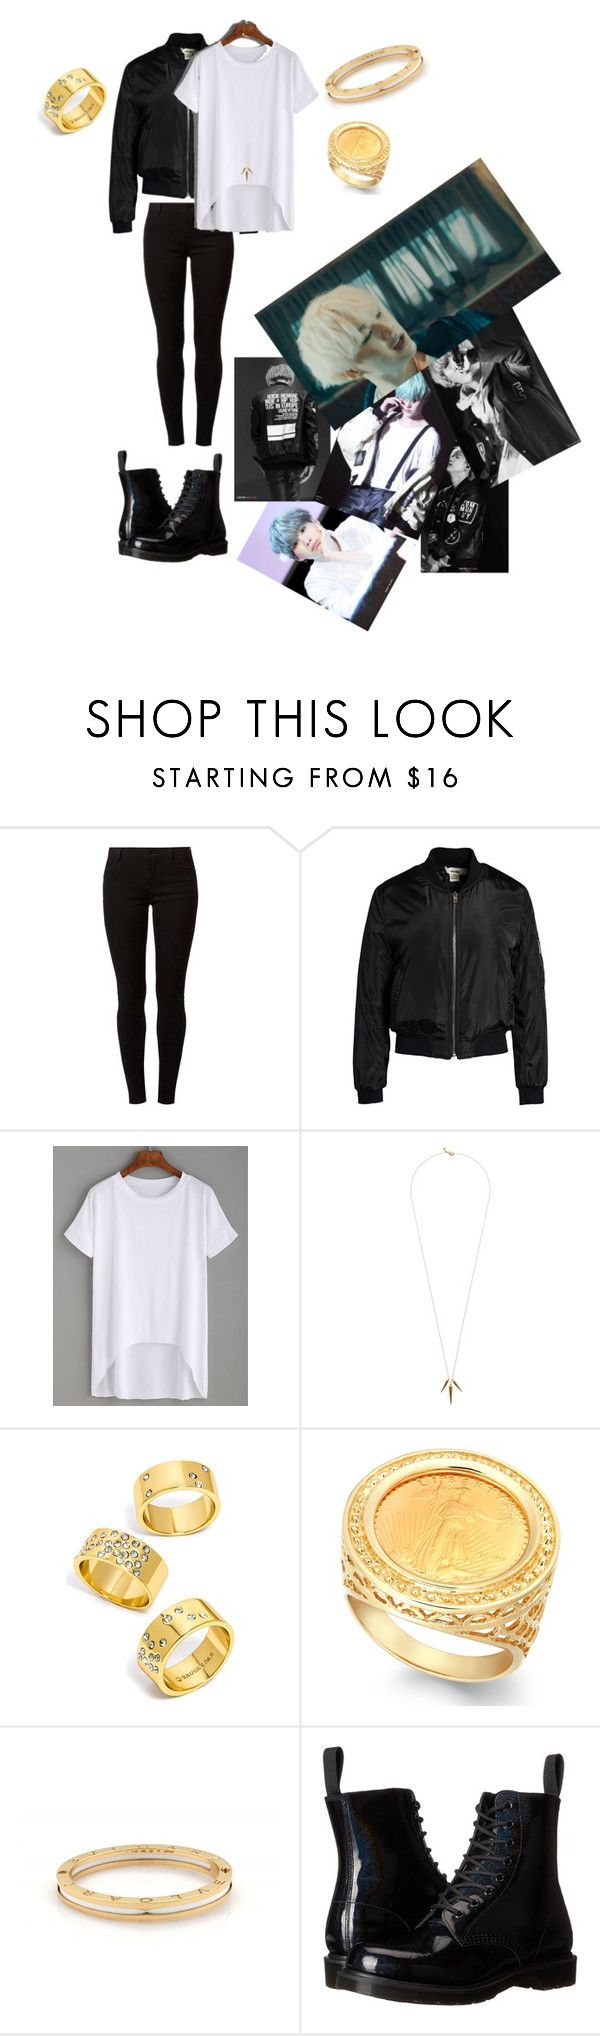 """AGUST D OUTFIT!! "" by msunicornanna ❤ liked on Polyvore featuring Dorothy Perkins, Sans Souci, Gorjana, BaubleBar, Bulgari and Dr. Martens"